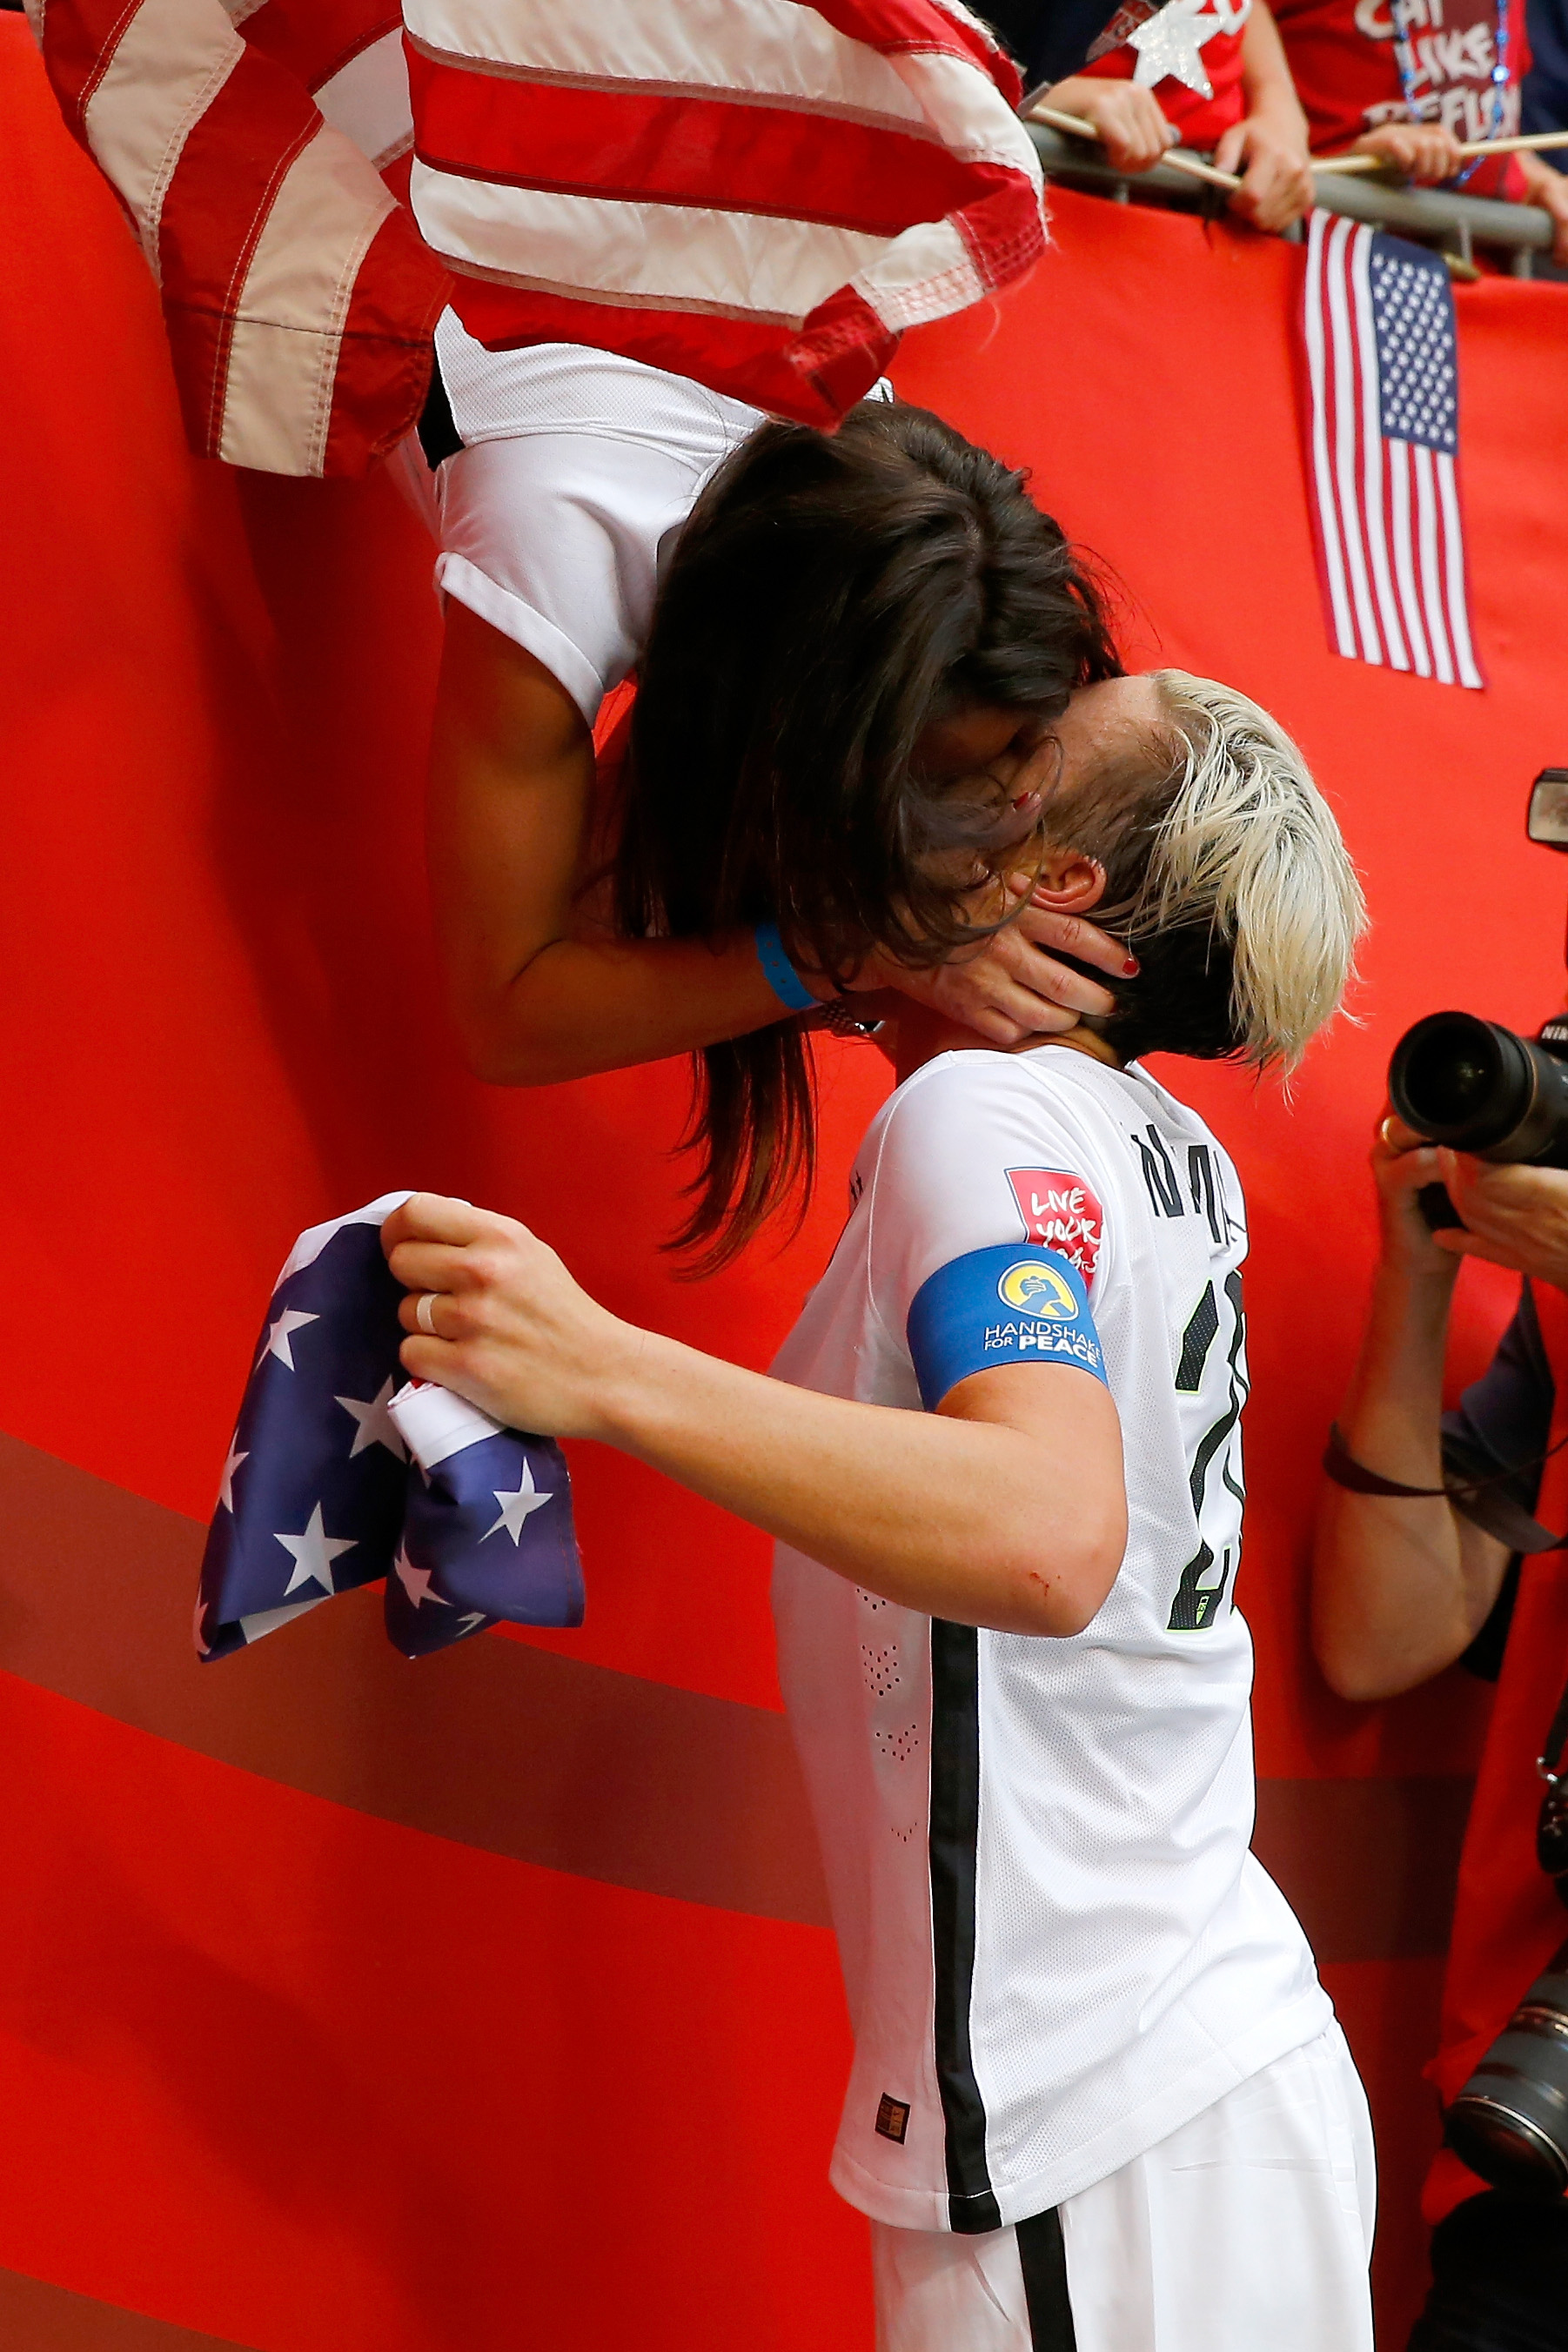 2 way kiss line dance 2001 dodge radio wiring diagram us soccer star abby wambach melted everyone 39s hearts when